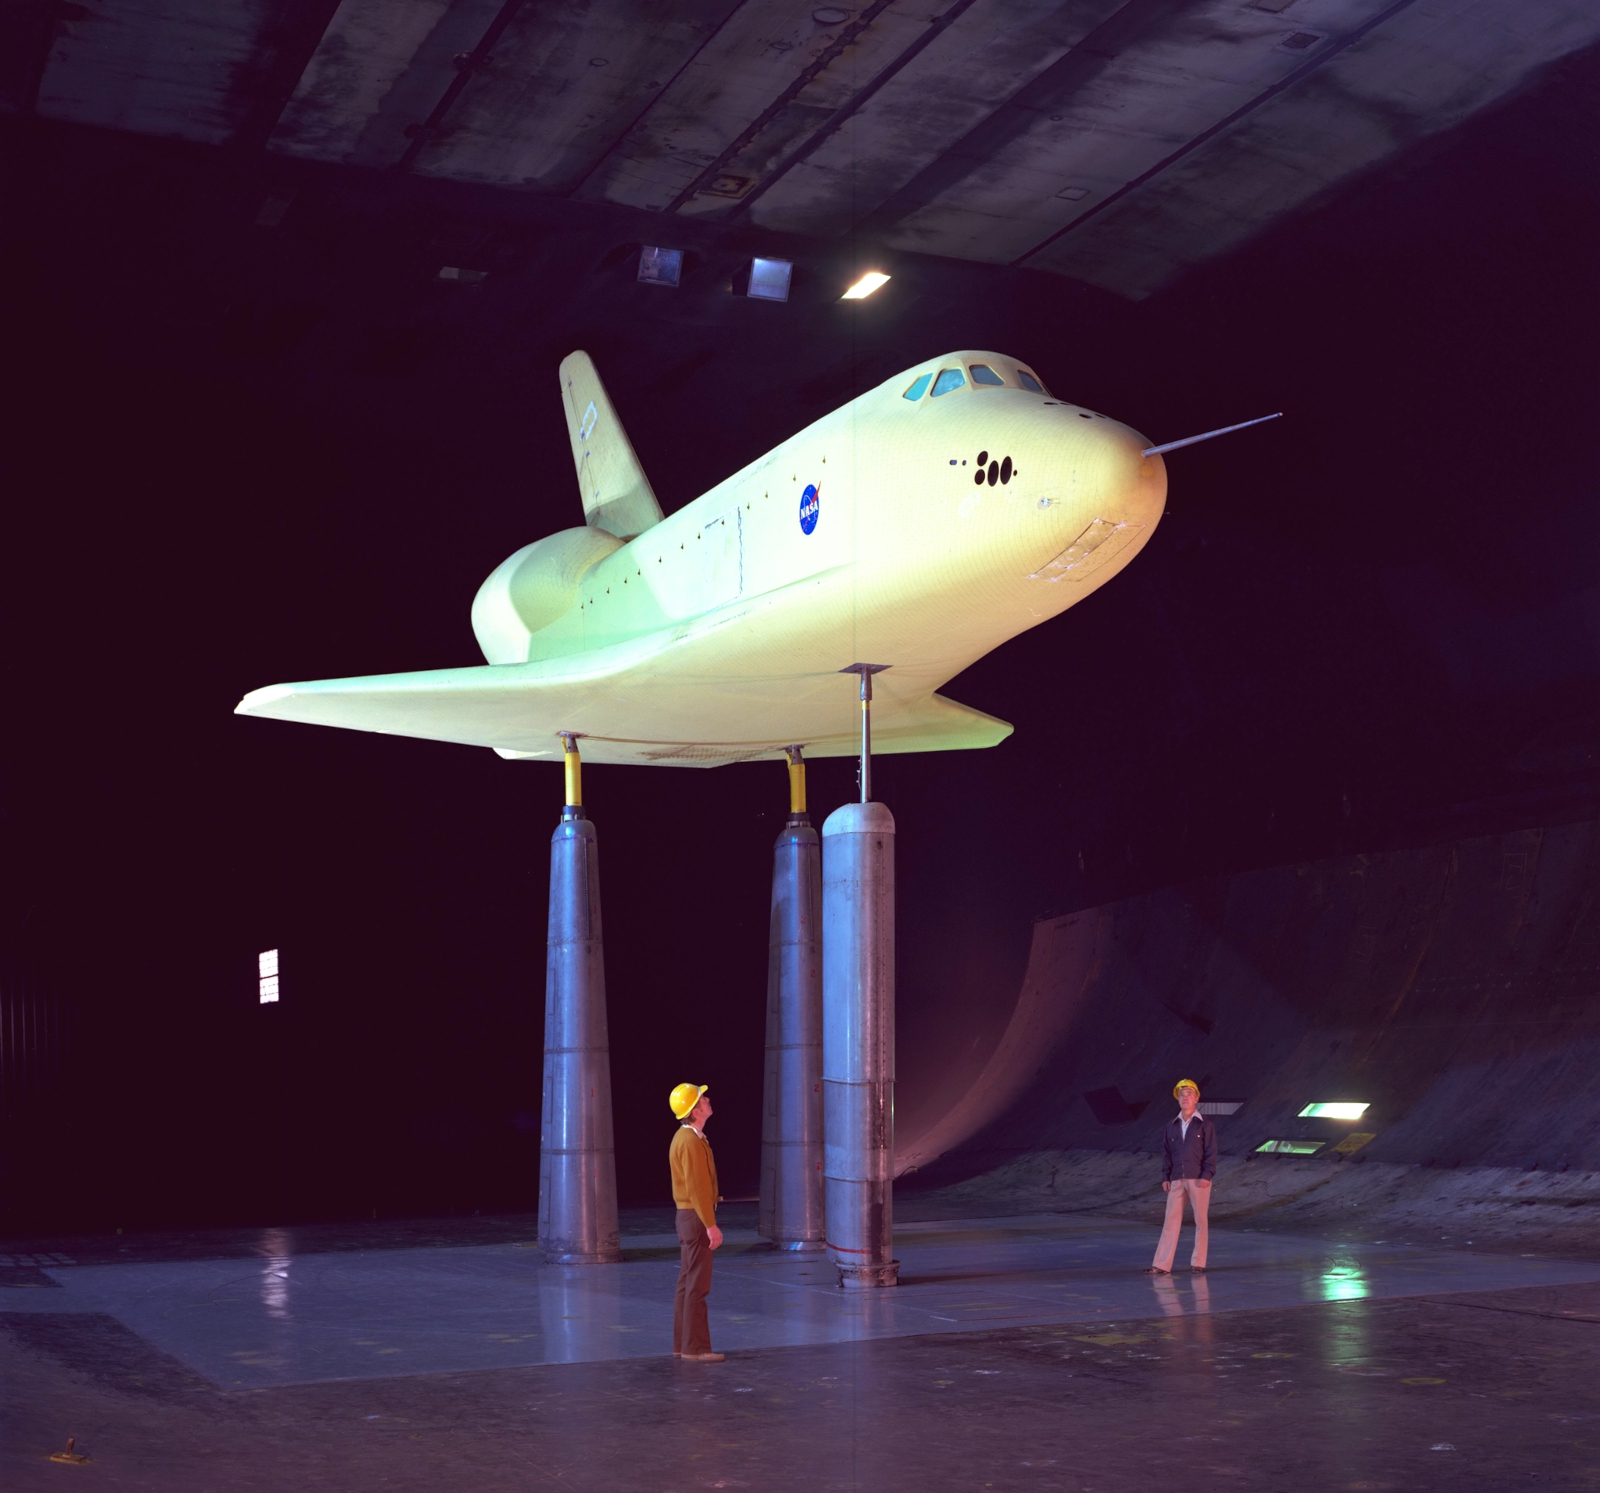 The 0.36-scale shuttle model during testing in the 40x80-ft wind tunnel at NASA Ames, February 27, 1976. (Source: NASA)